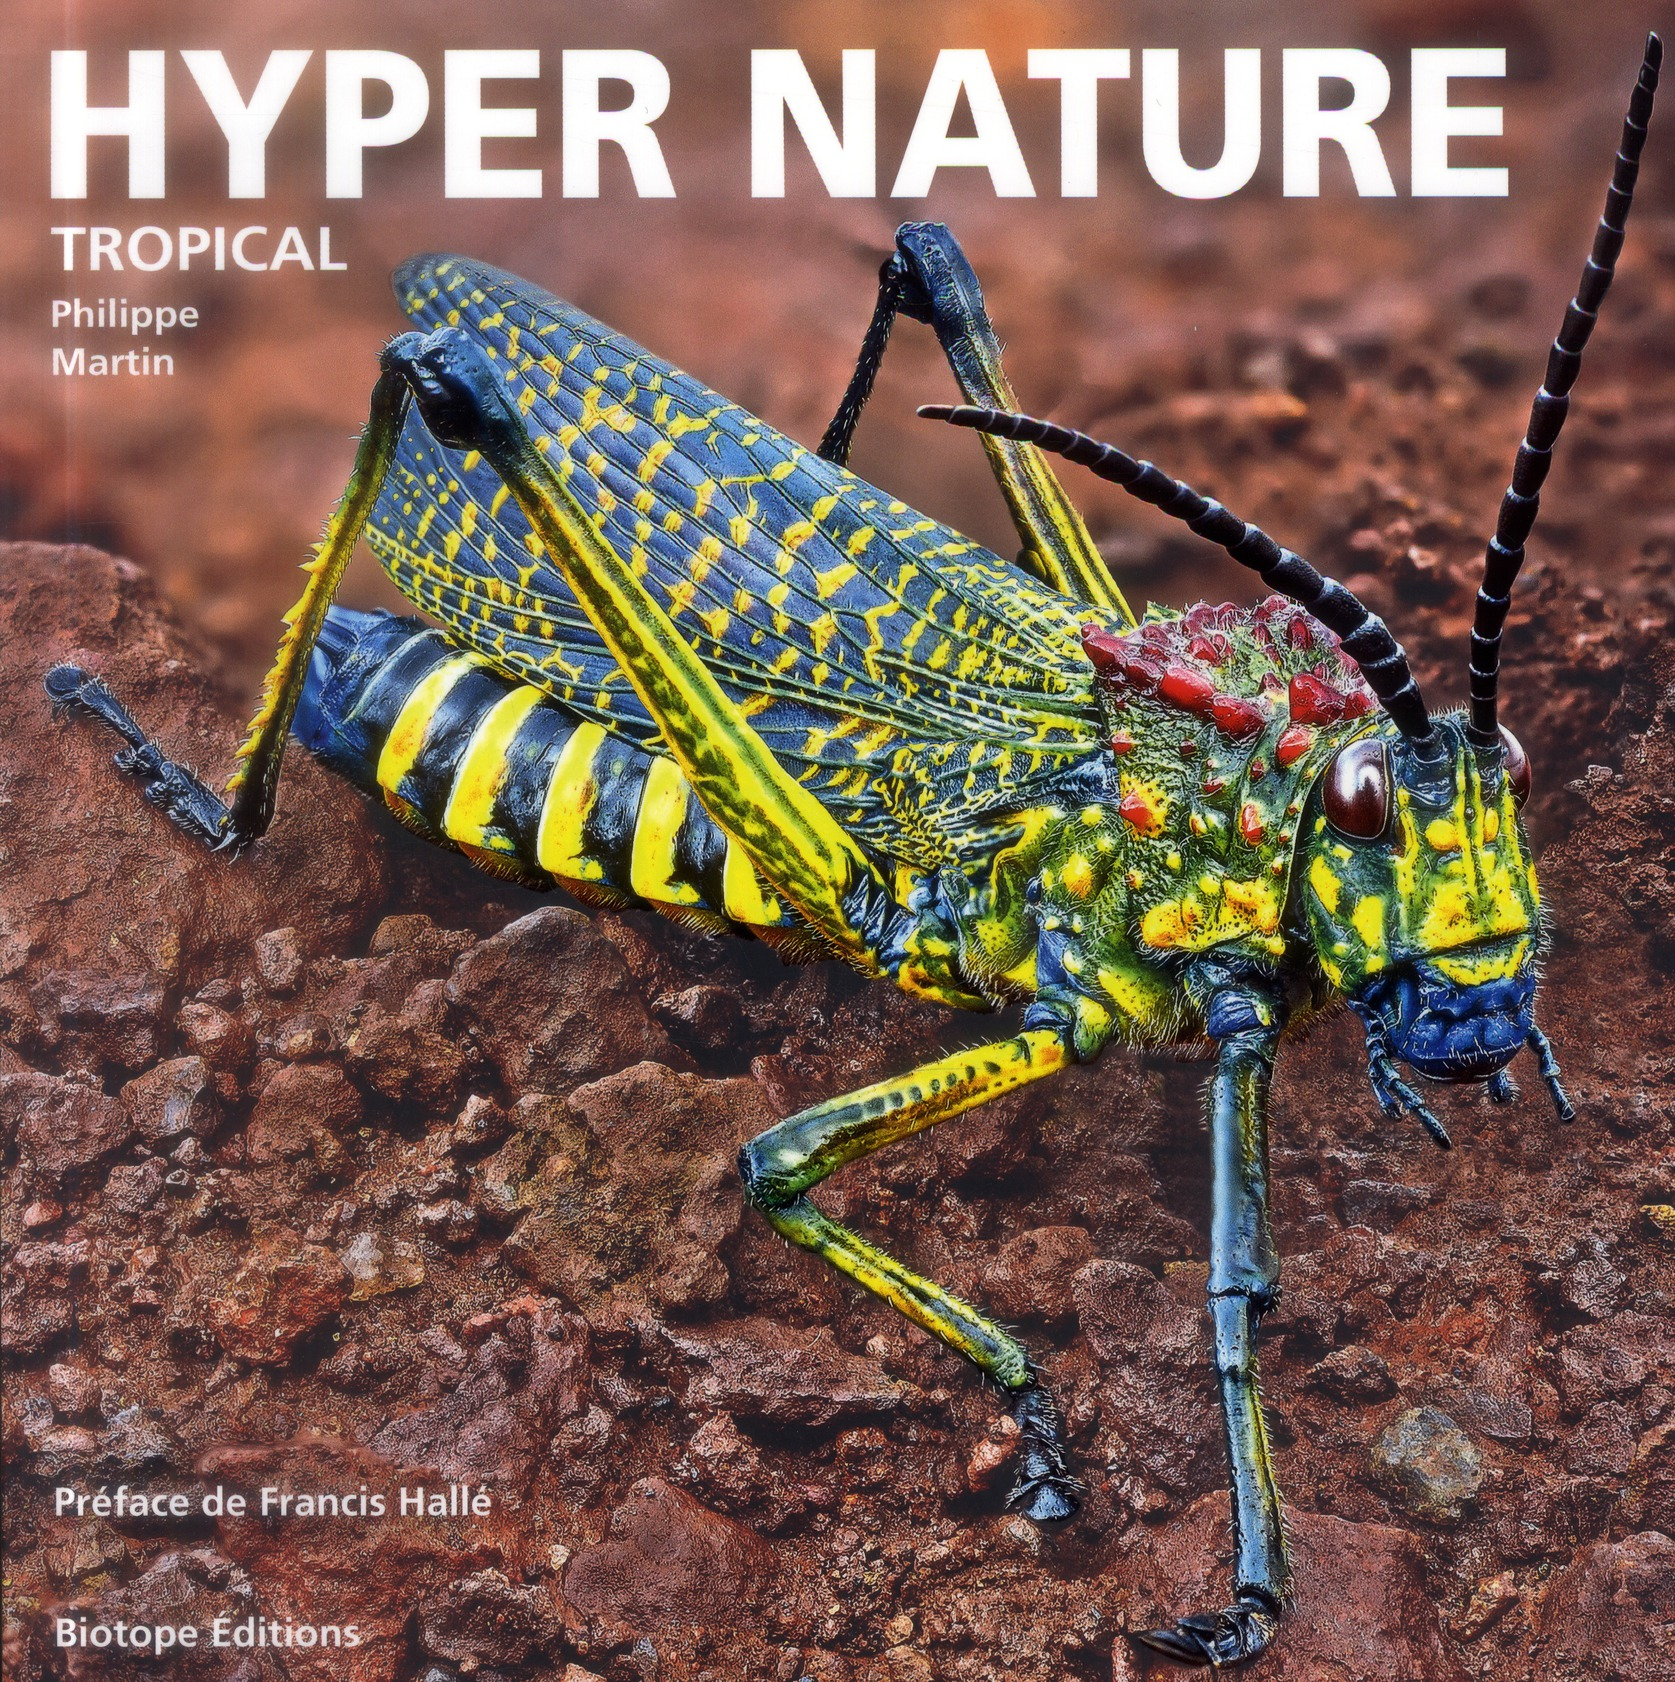 HYPER NATURE TROPICAL